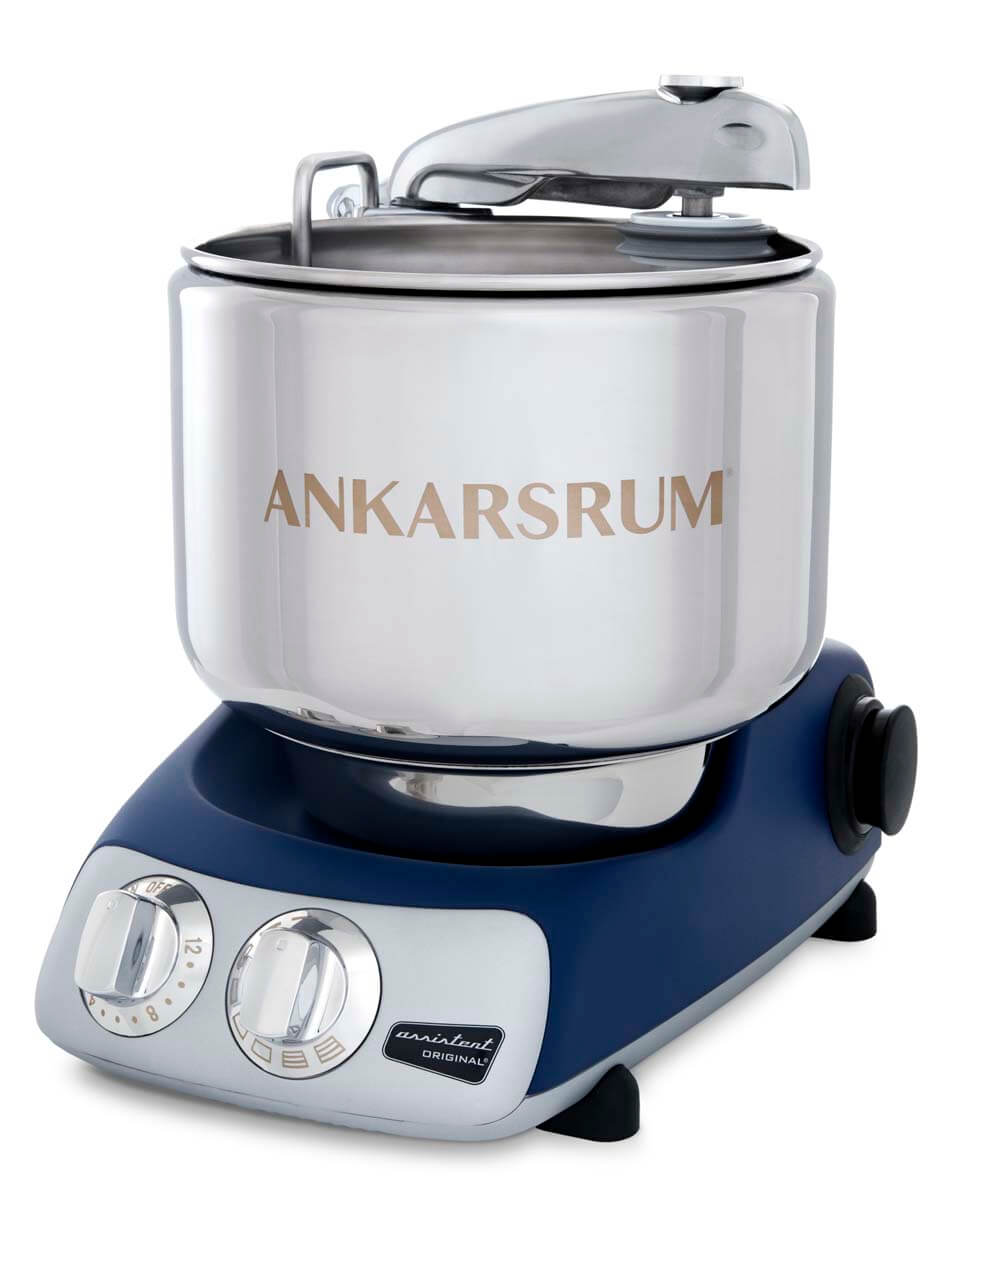 Ankarsrum Assistent Basis Royal Blue